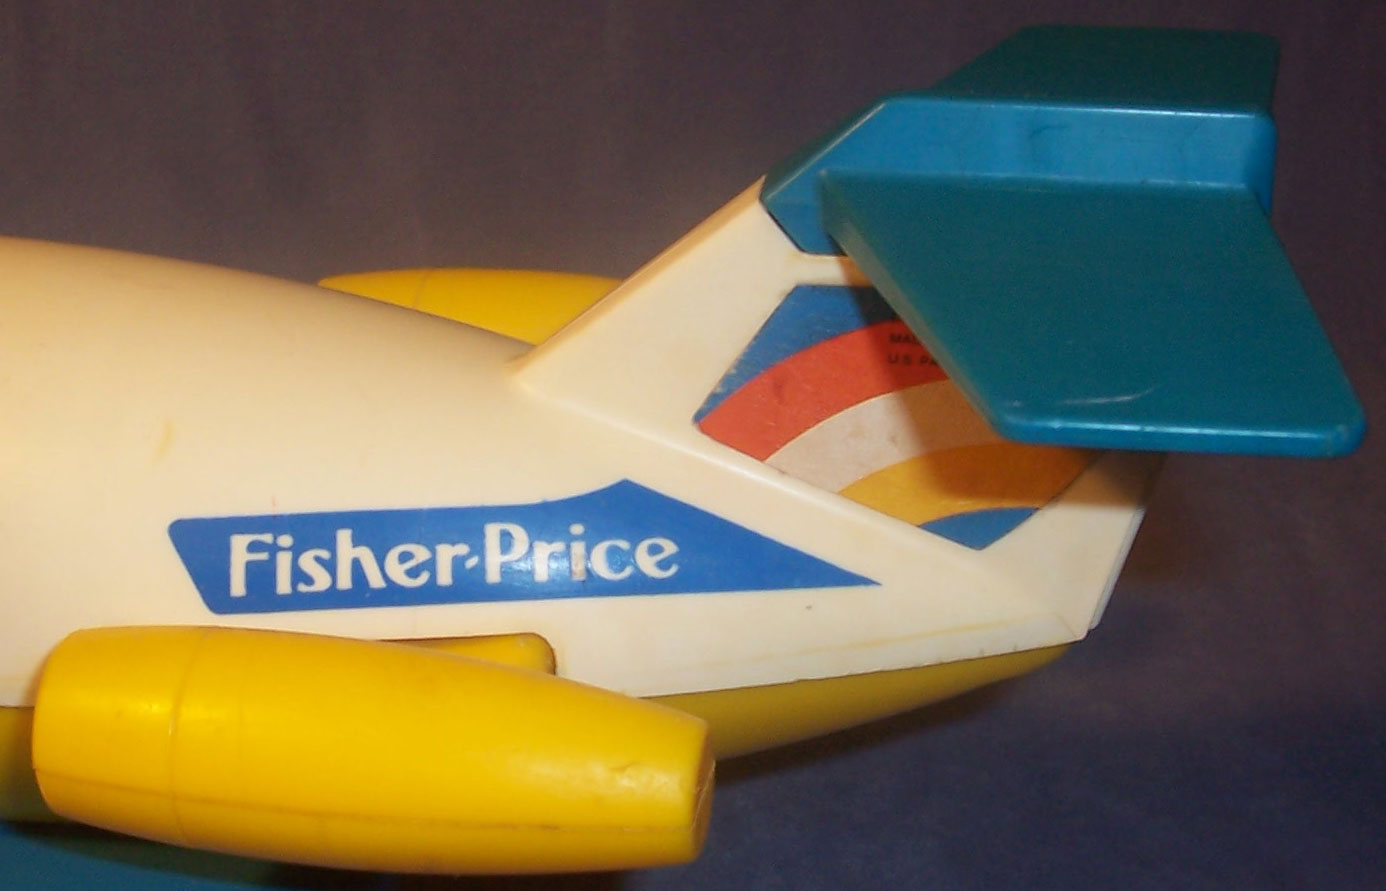 This Old Toy's Fisher-Price Original Little People Vehicles